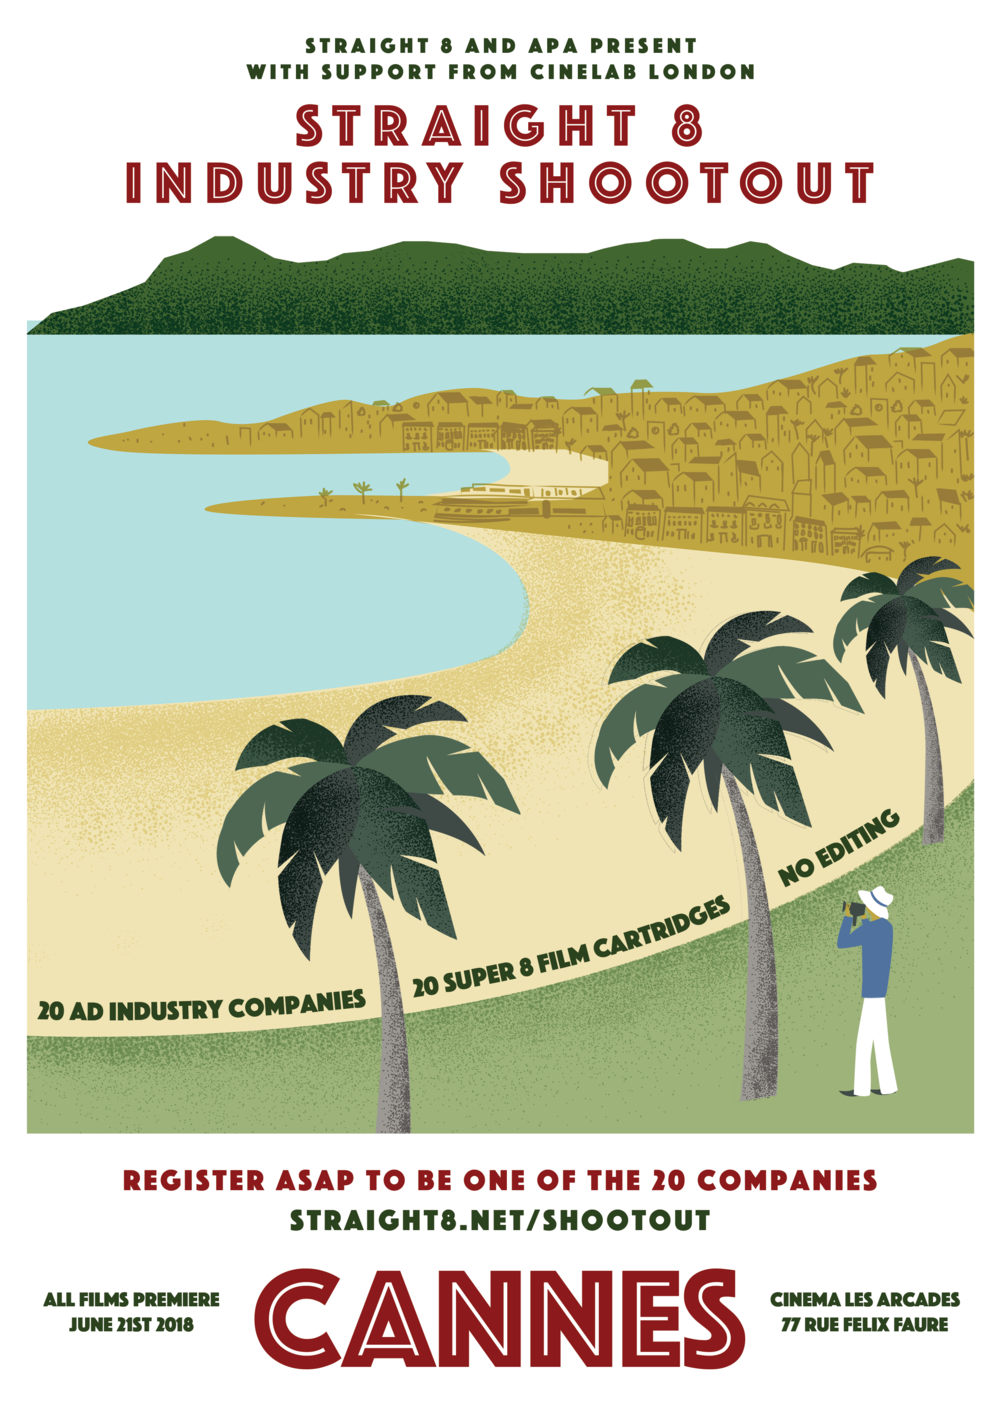 Industry Shootout Cannes 2018 a6 POSTCARD with cinelab.png